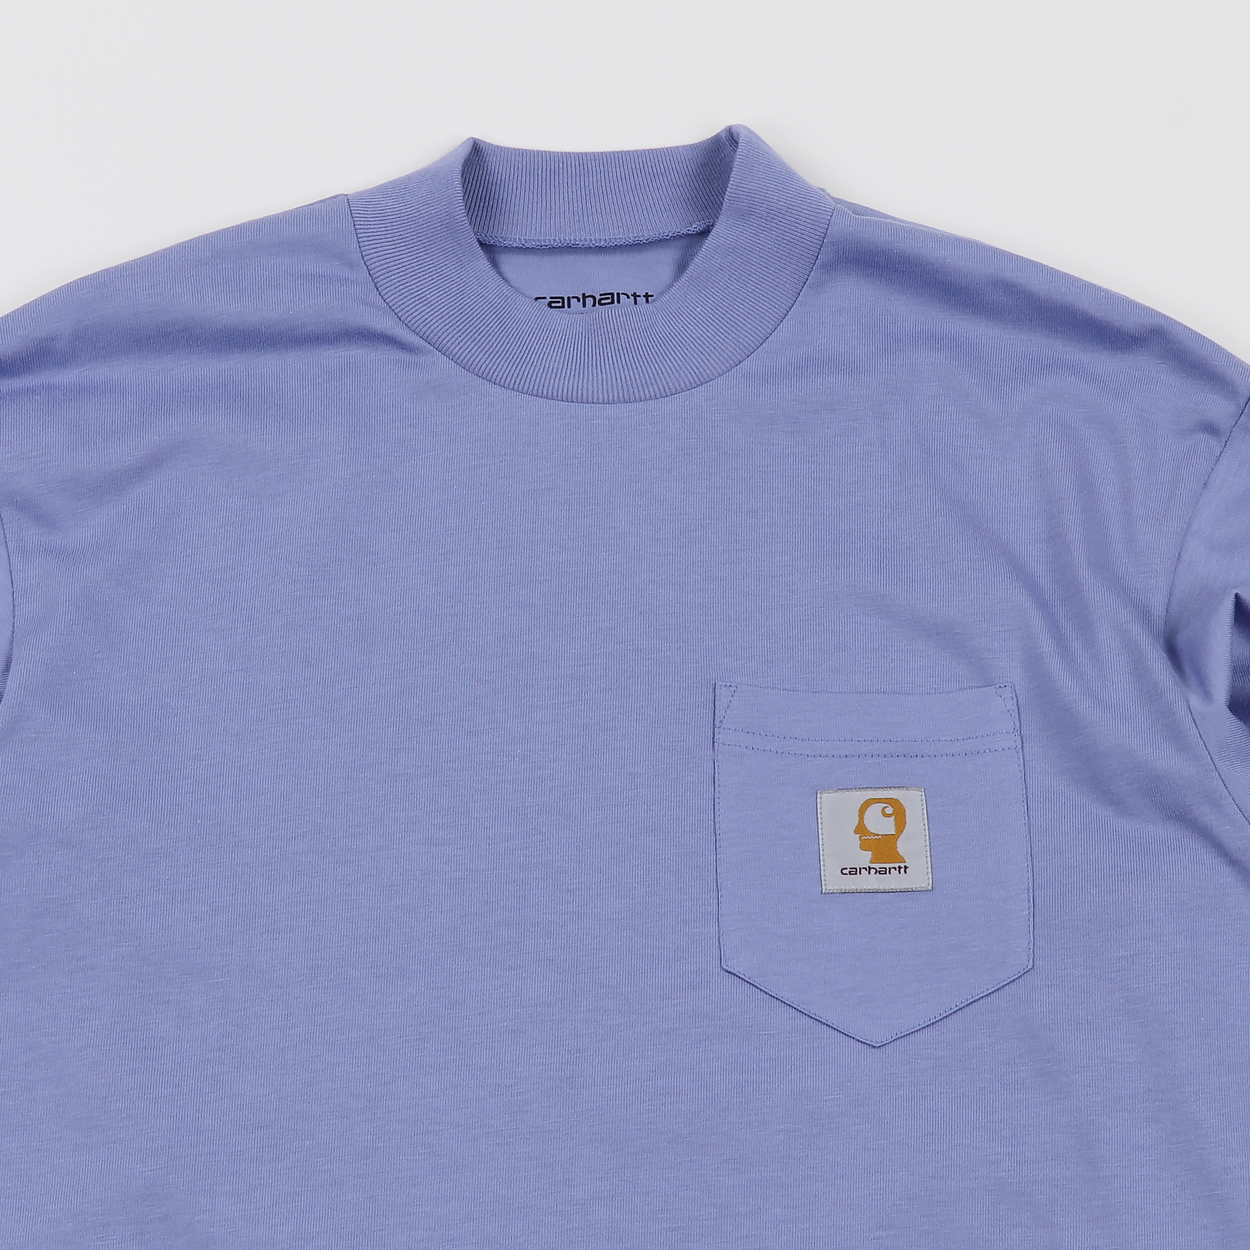 1cfe0eaf8199a5 The Swan Long Sleeve tee is part of the banging Carhartt WIP x Brain Dead  collab, which features large rear graphic print and Carhartt x Brain Dead  logo to ...